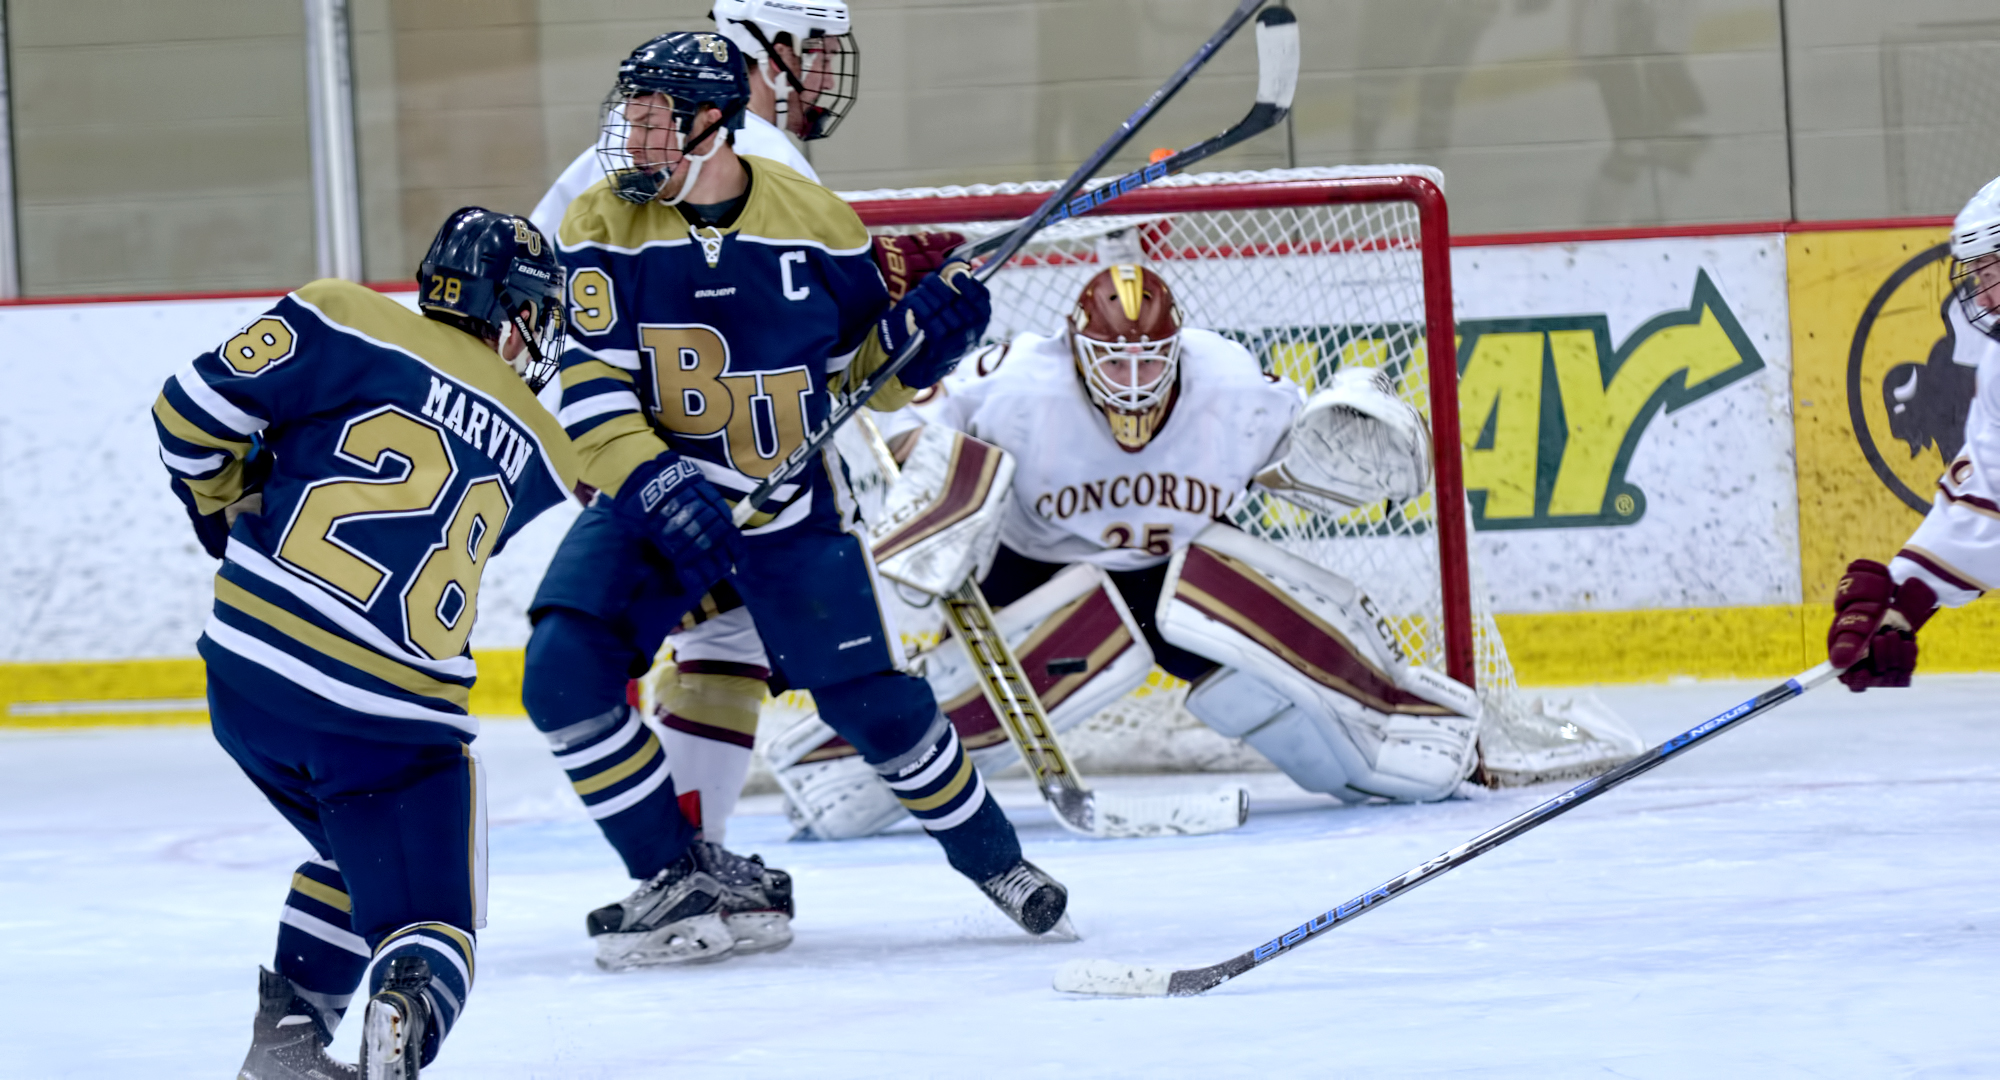 Sophomore goalie Sam Nelson concentrates on the puck after a shot by a Bethel attacker in the second period of the Cobbers' game with the Royals.